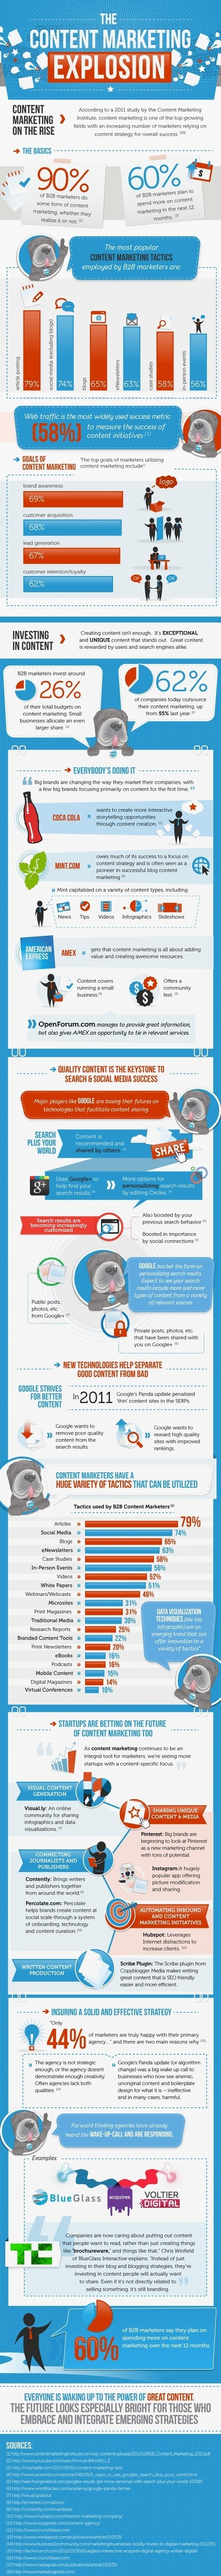 The Content Marketing Explosion & Importance of Reviews [Infographic & Marty Note] | BI Revolution | Scoop.it